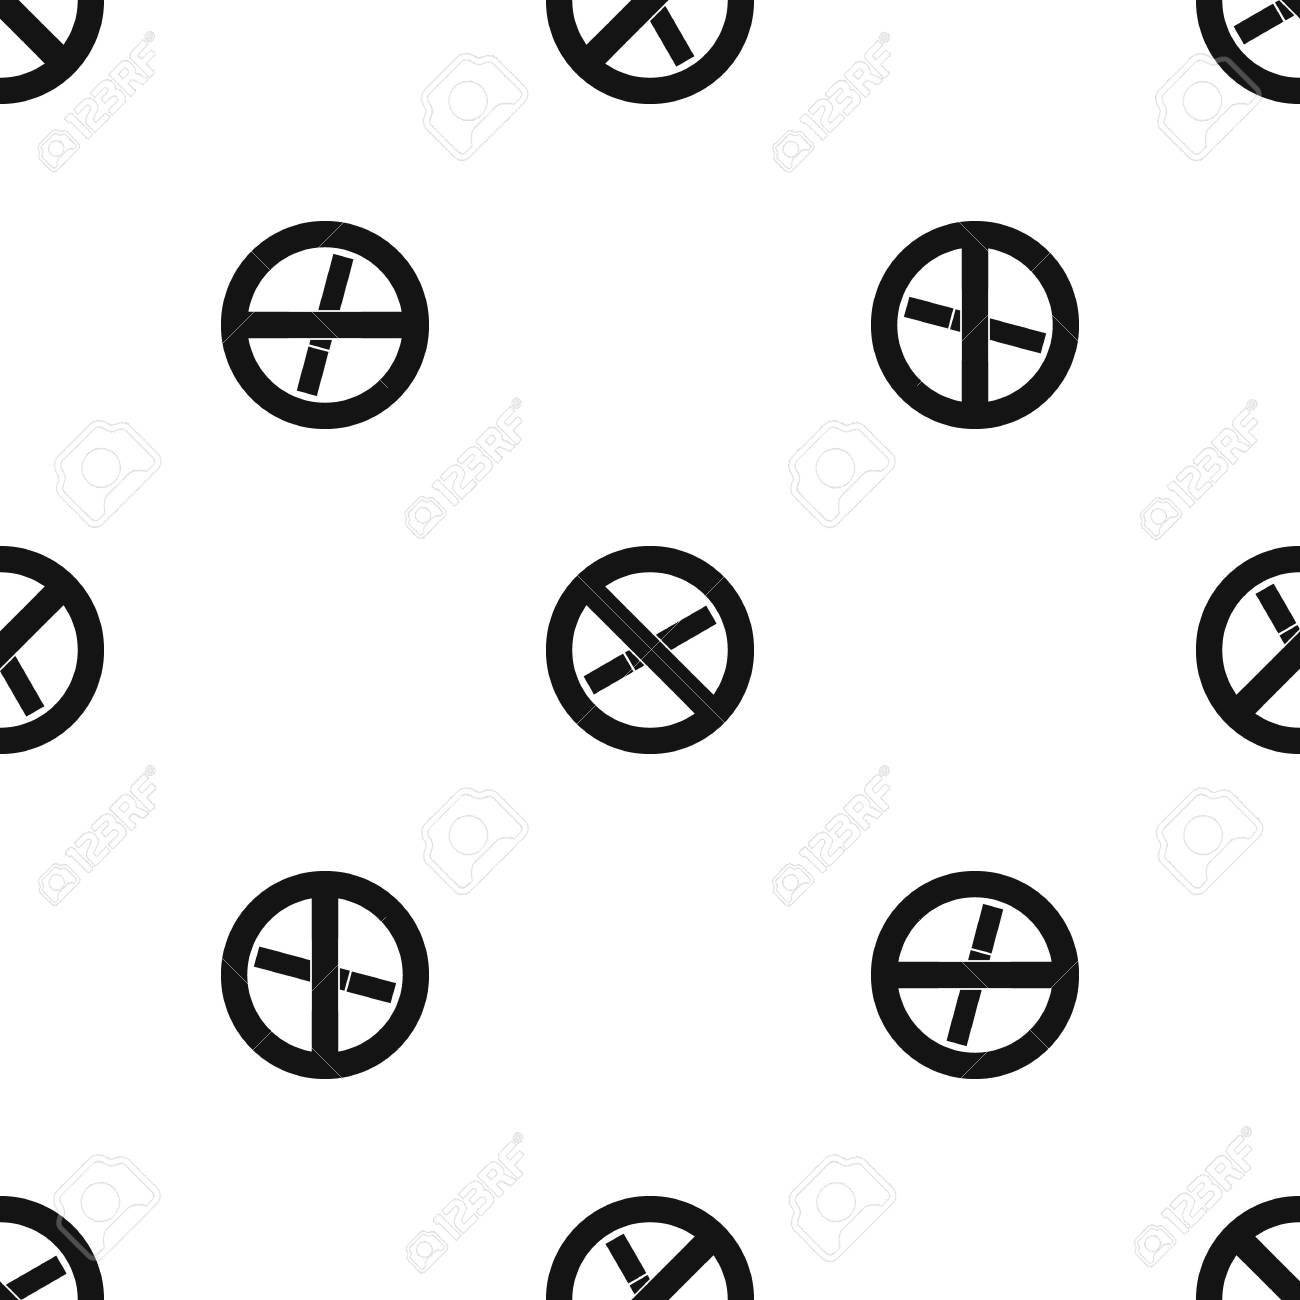 Healthy Habits Clipart Black And White Images Gallery No Smoking Sign Pattern Seamless Royalty Free Cliparts Rh 123rf Com